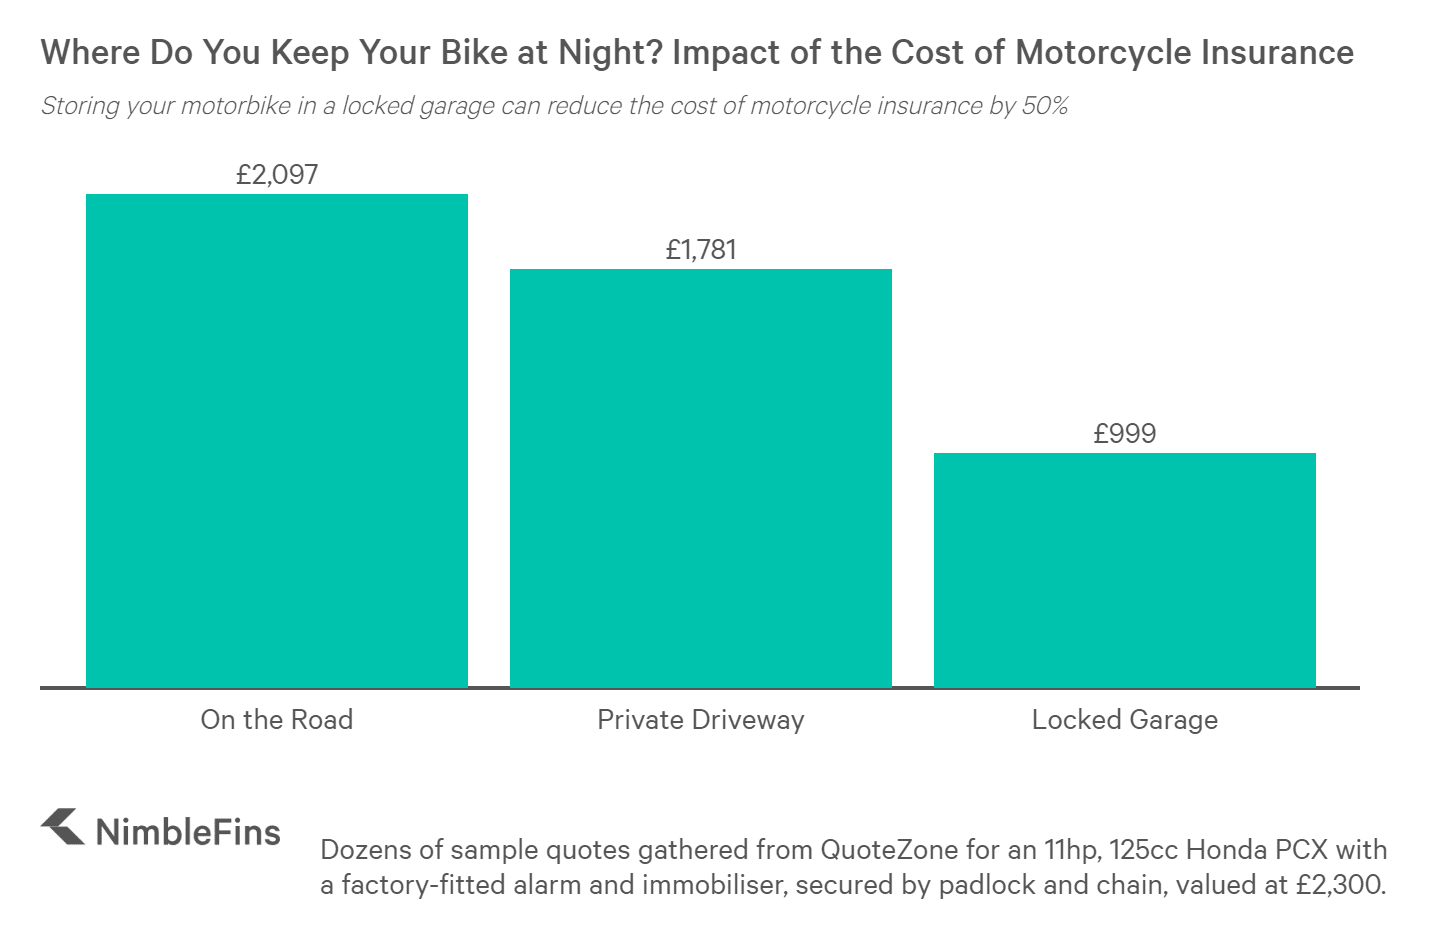 Chart showing the cost of motorcycle insurance when you keep it on the street, a private driveway or a locked garage at night.